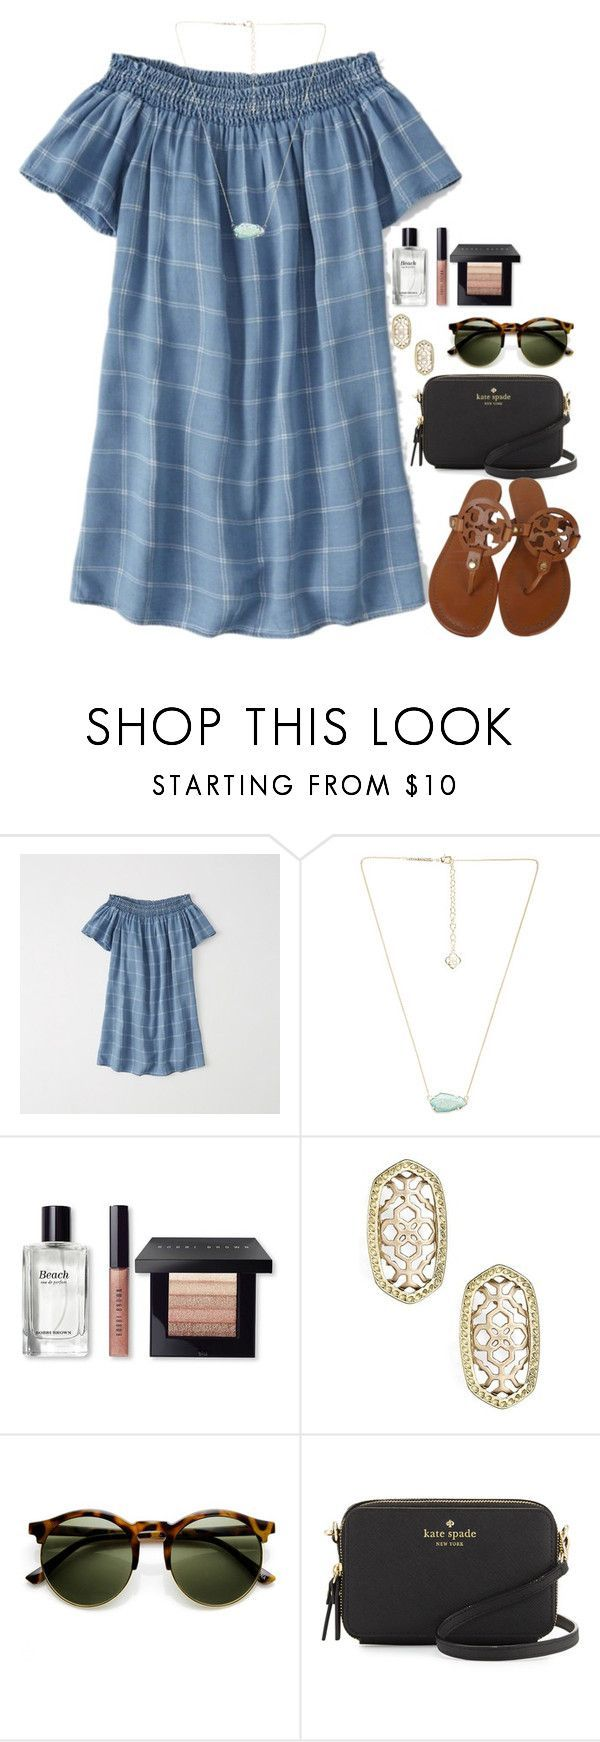 """Going out to dinner:)"" by flroasburn on Polyvore featuring Abercrombie & Fitch, Kendra Scott, Bobbi Brown Cosmetics, Kate Spade and Tory Burch"